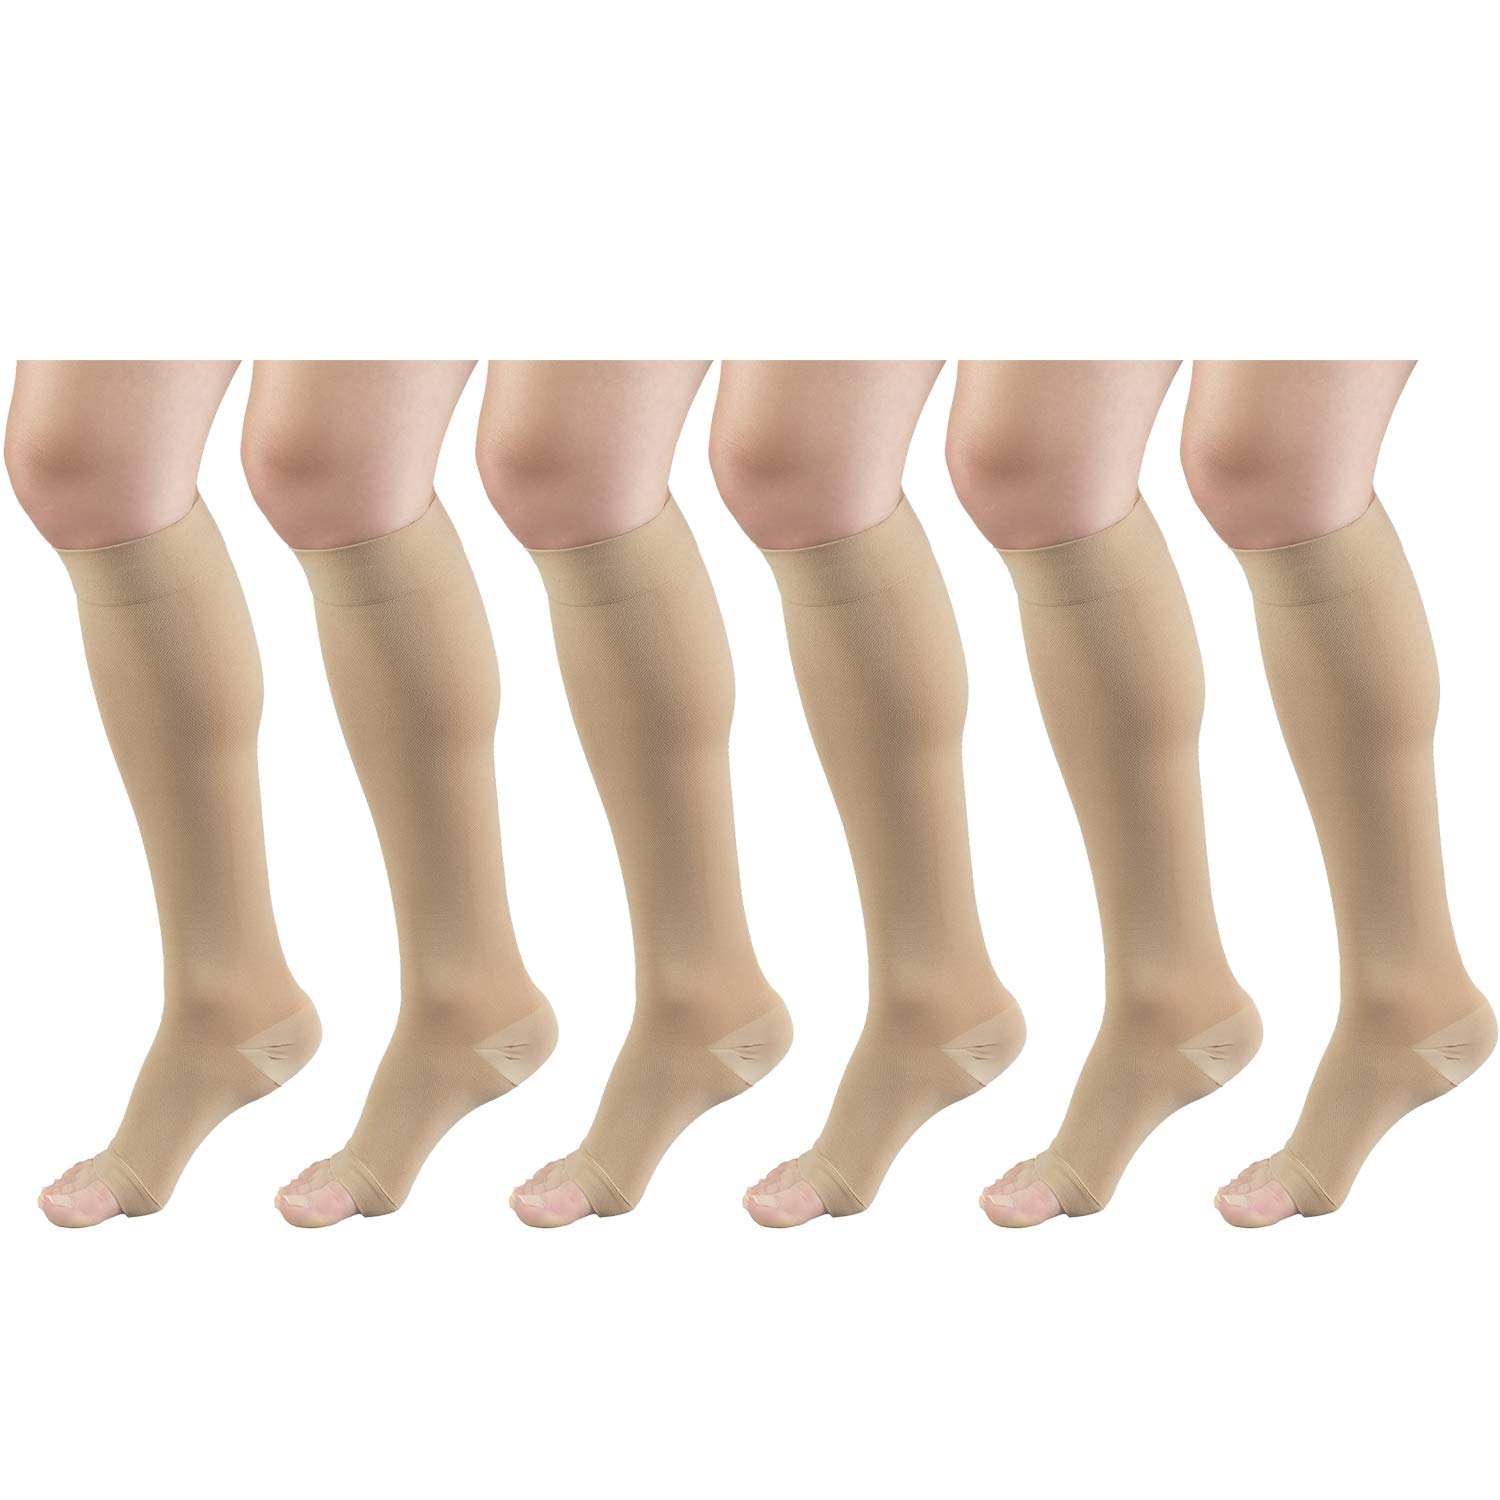 Short Length Surgical Stockings, 18 mmHg Compression for Men and Women, Reduced Length, Open Toe Beige Large (6 Pairs)